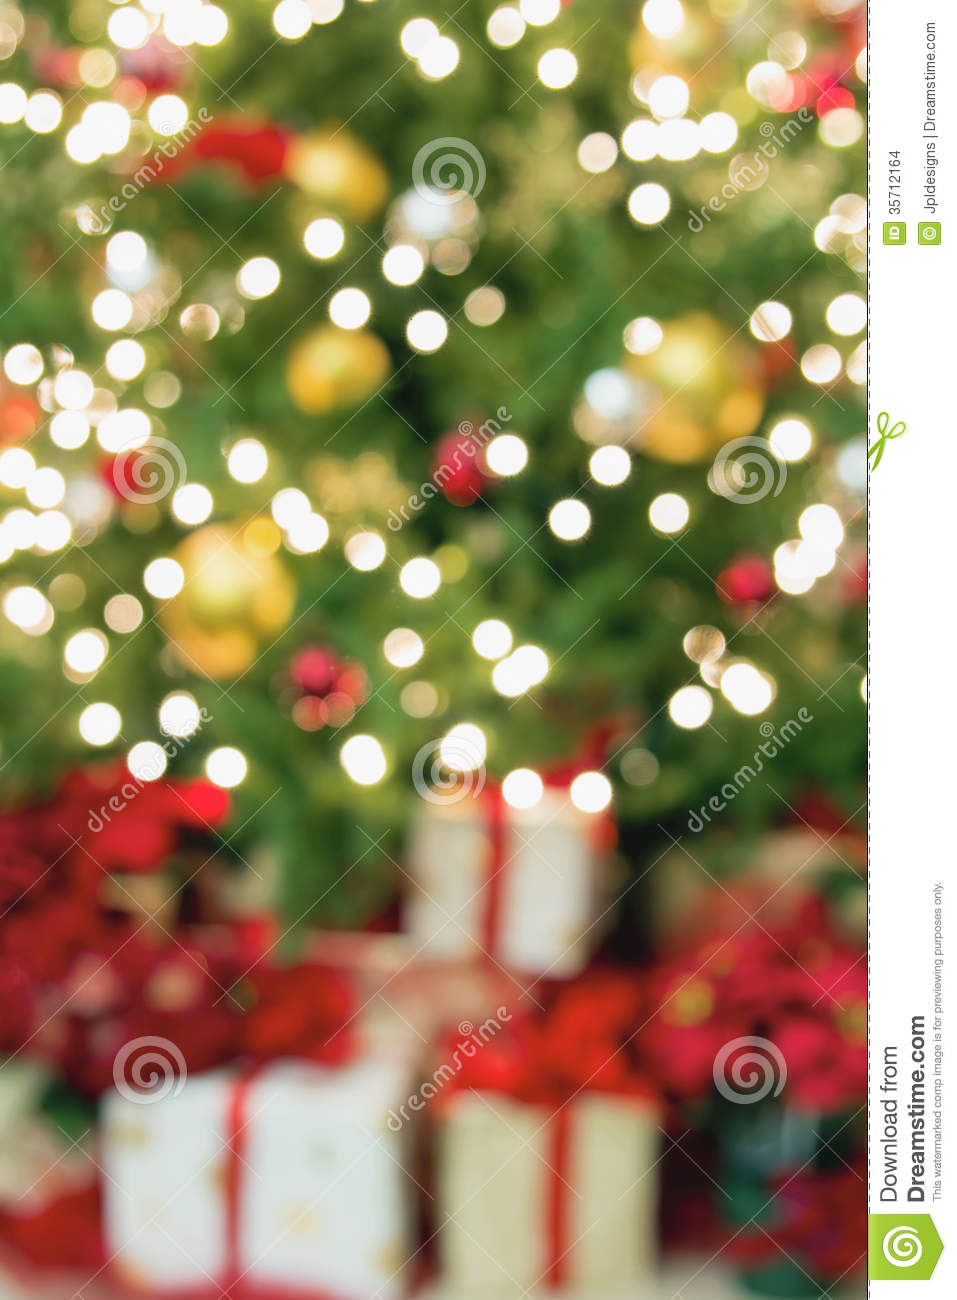 Christmas Tree With Presents Blurred Background Stock ...